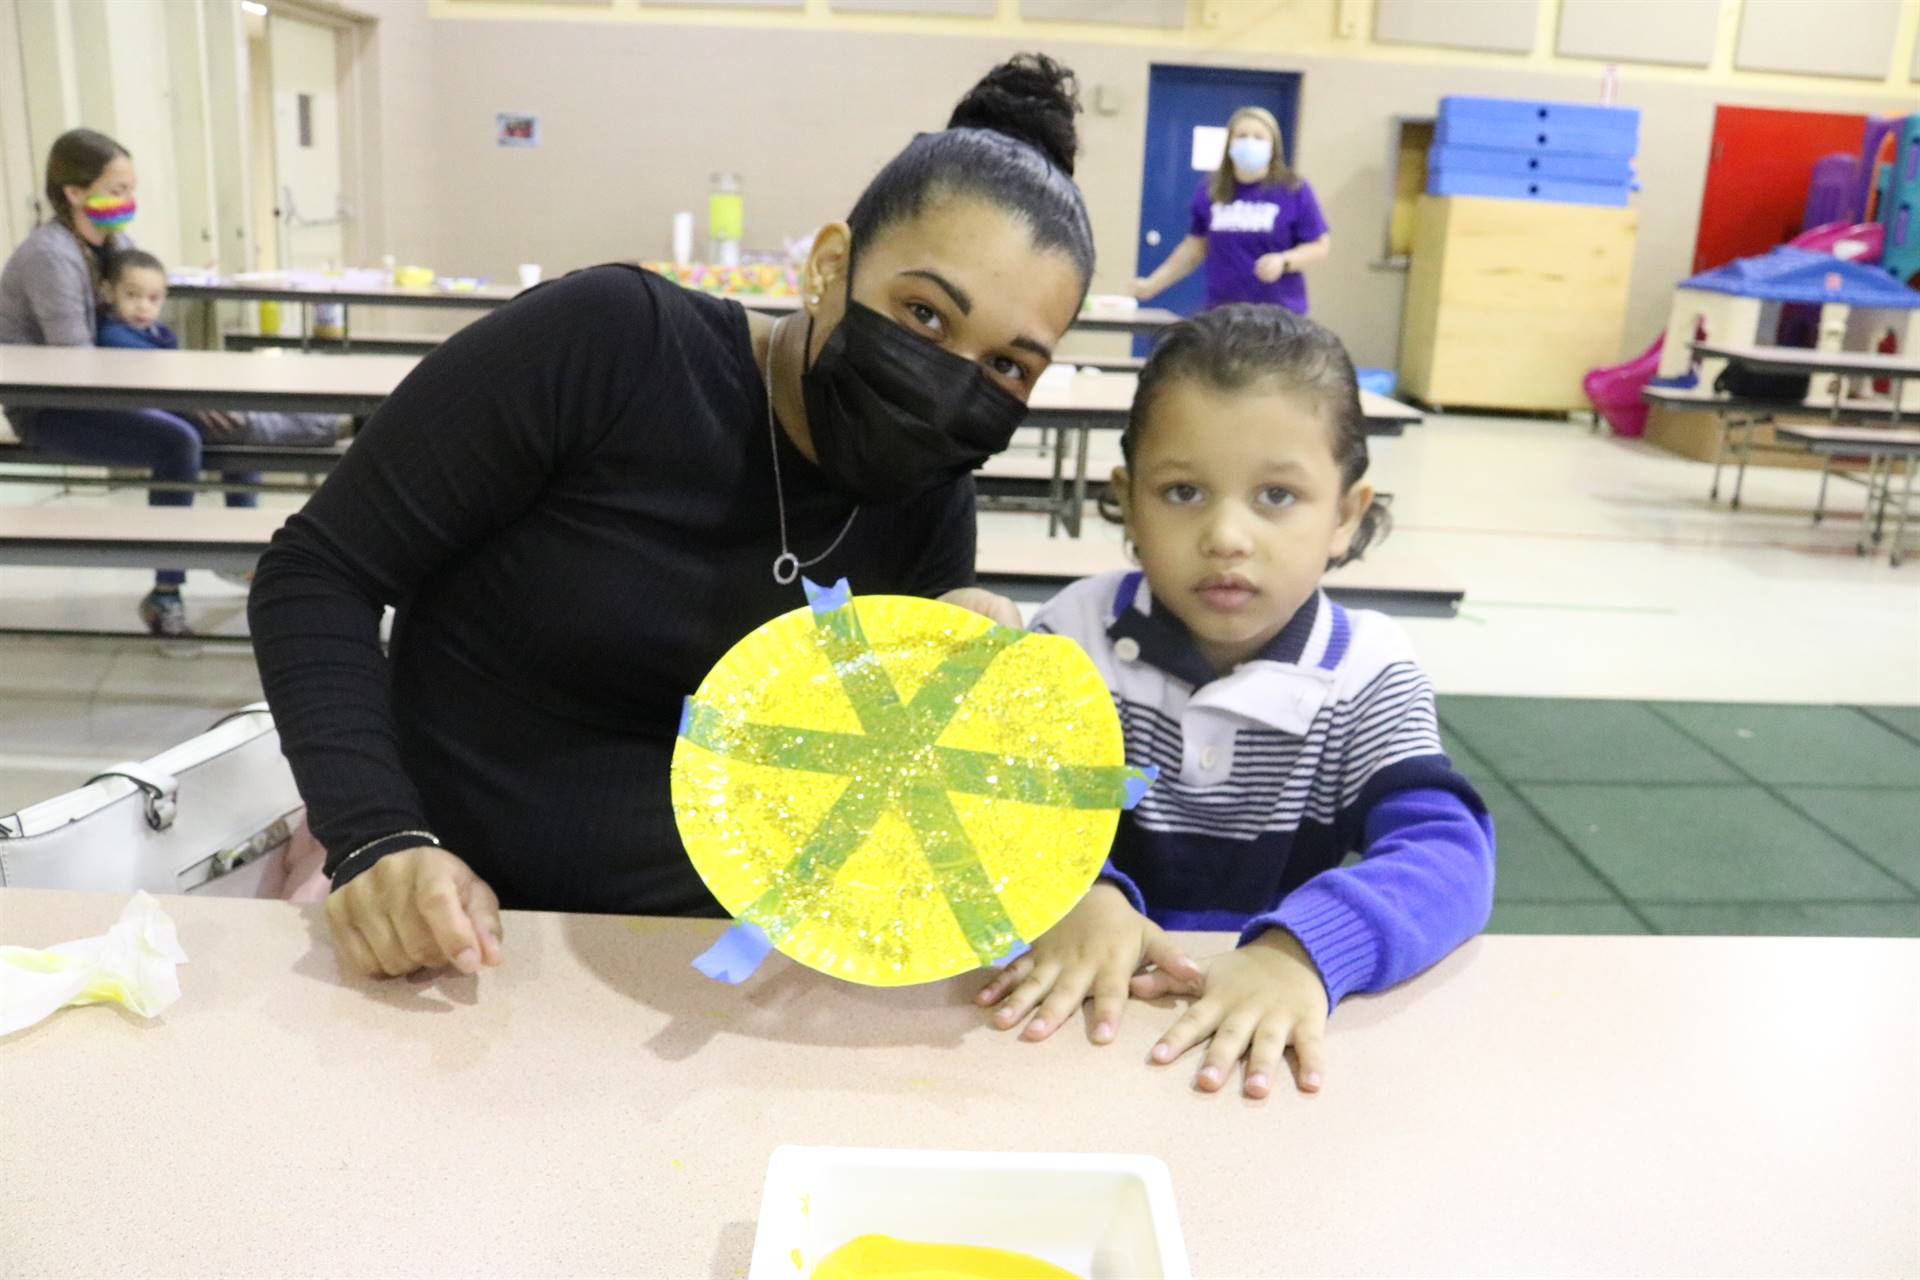 lady and boy holding yellow plate